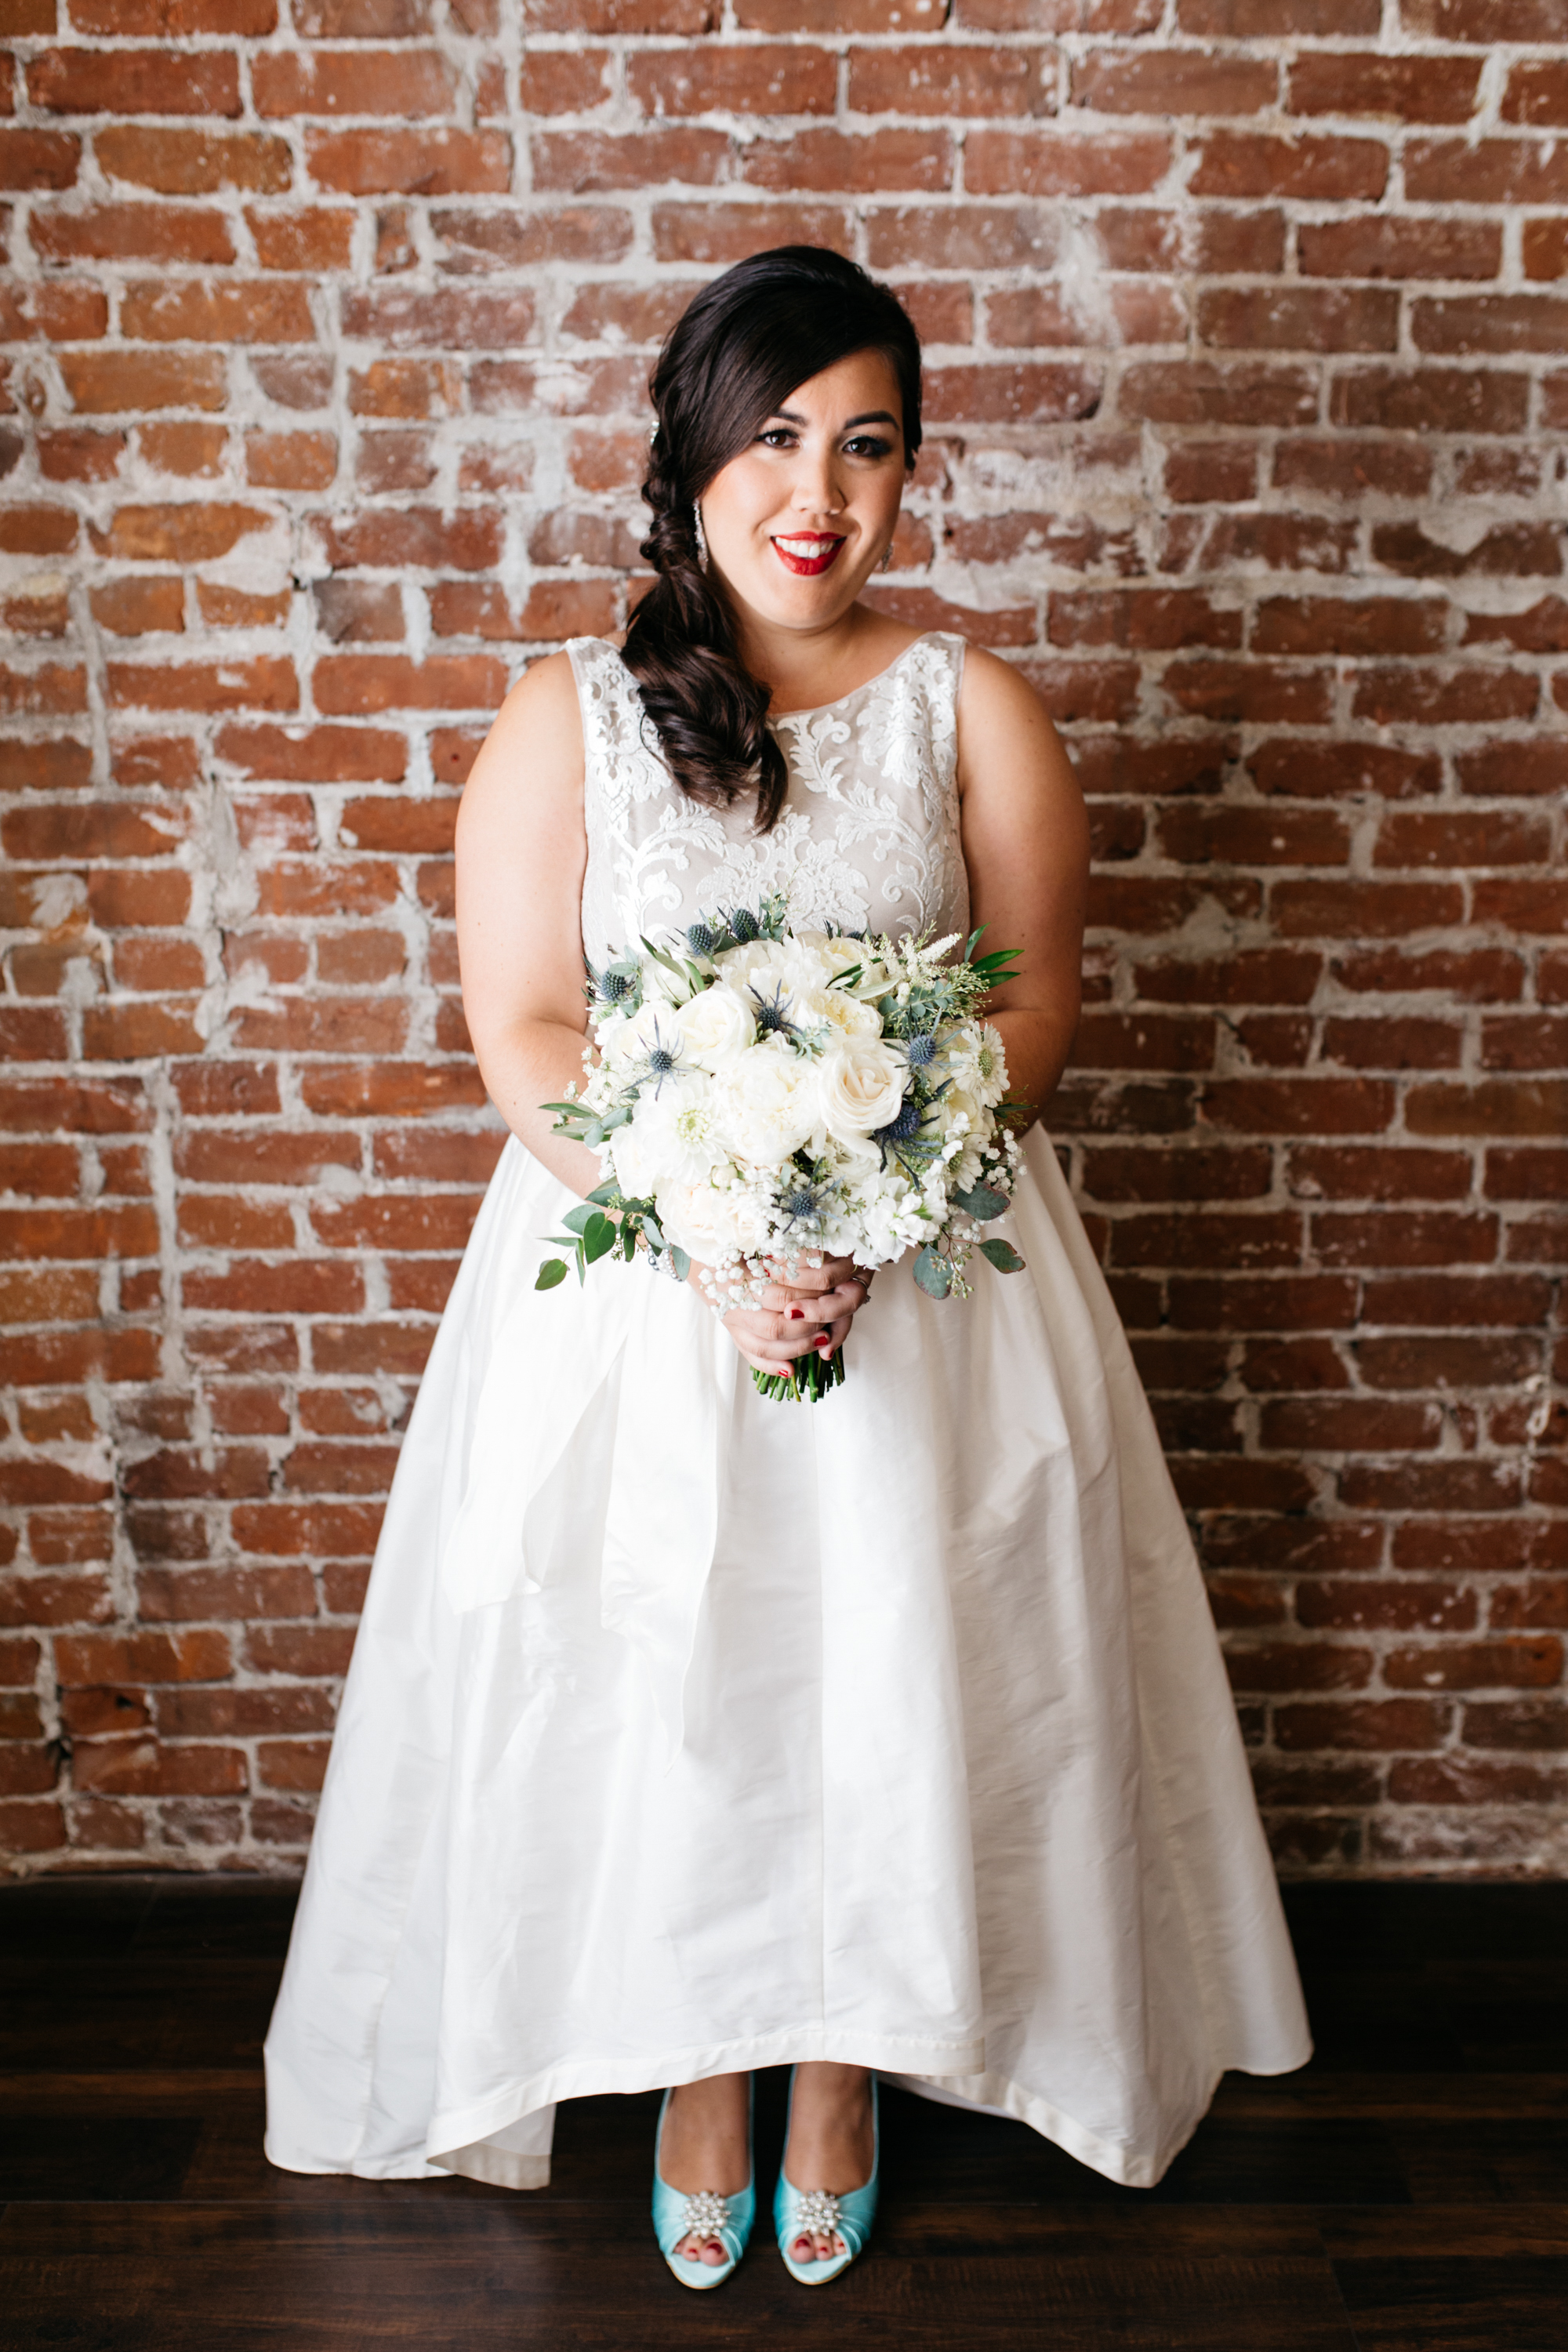 SamErica Studios - Los Angeles Wedding Photographer - The Loft on Pine-33.jpg